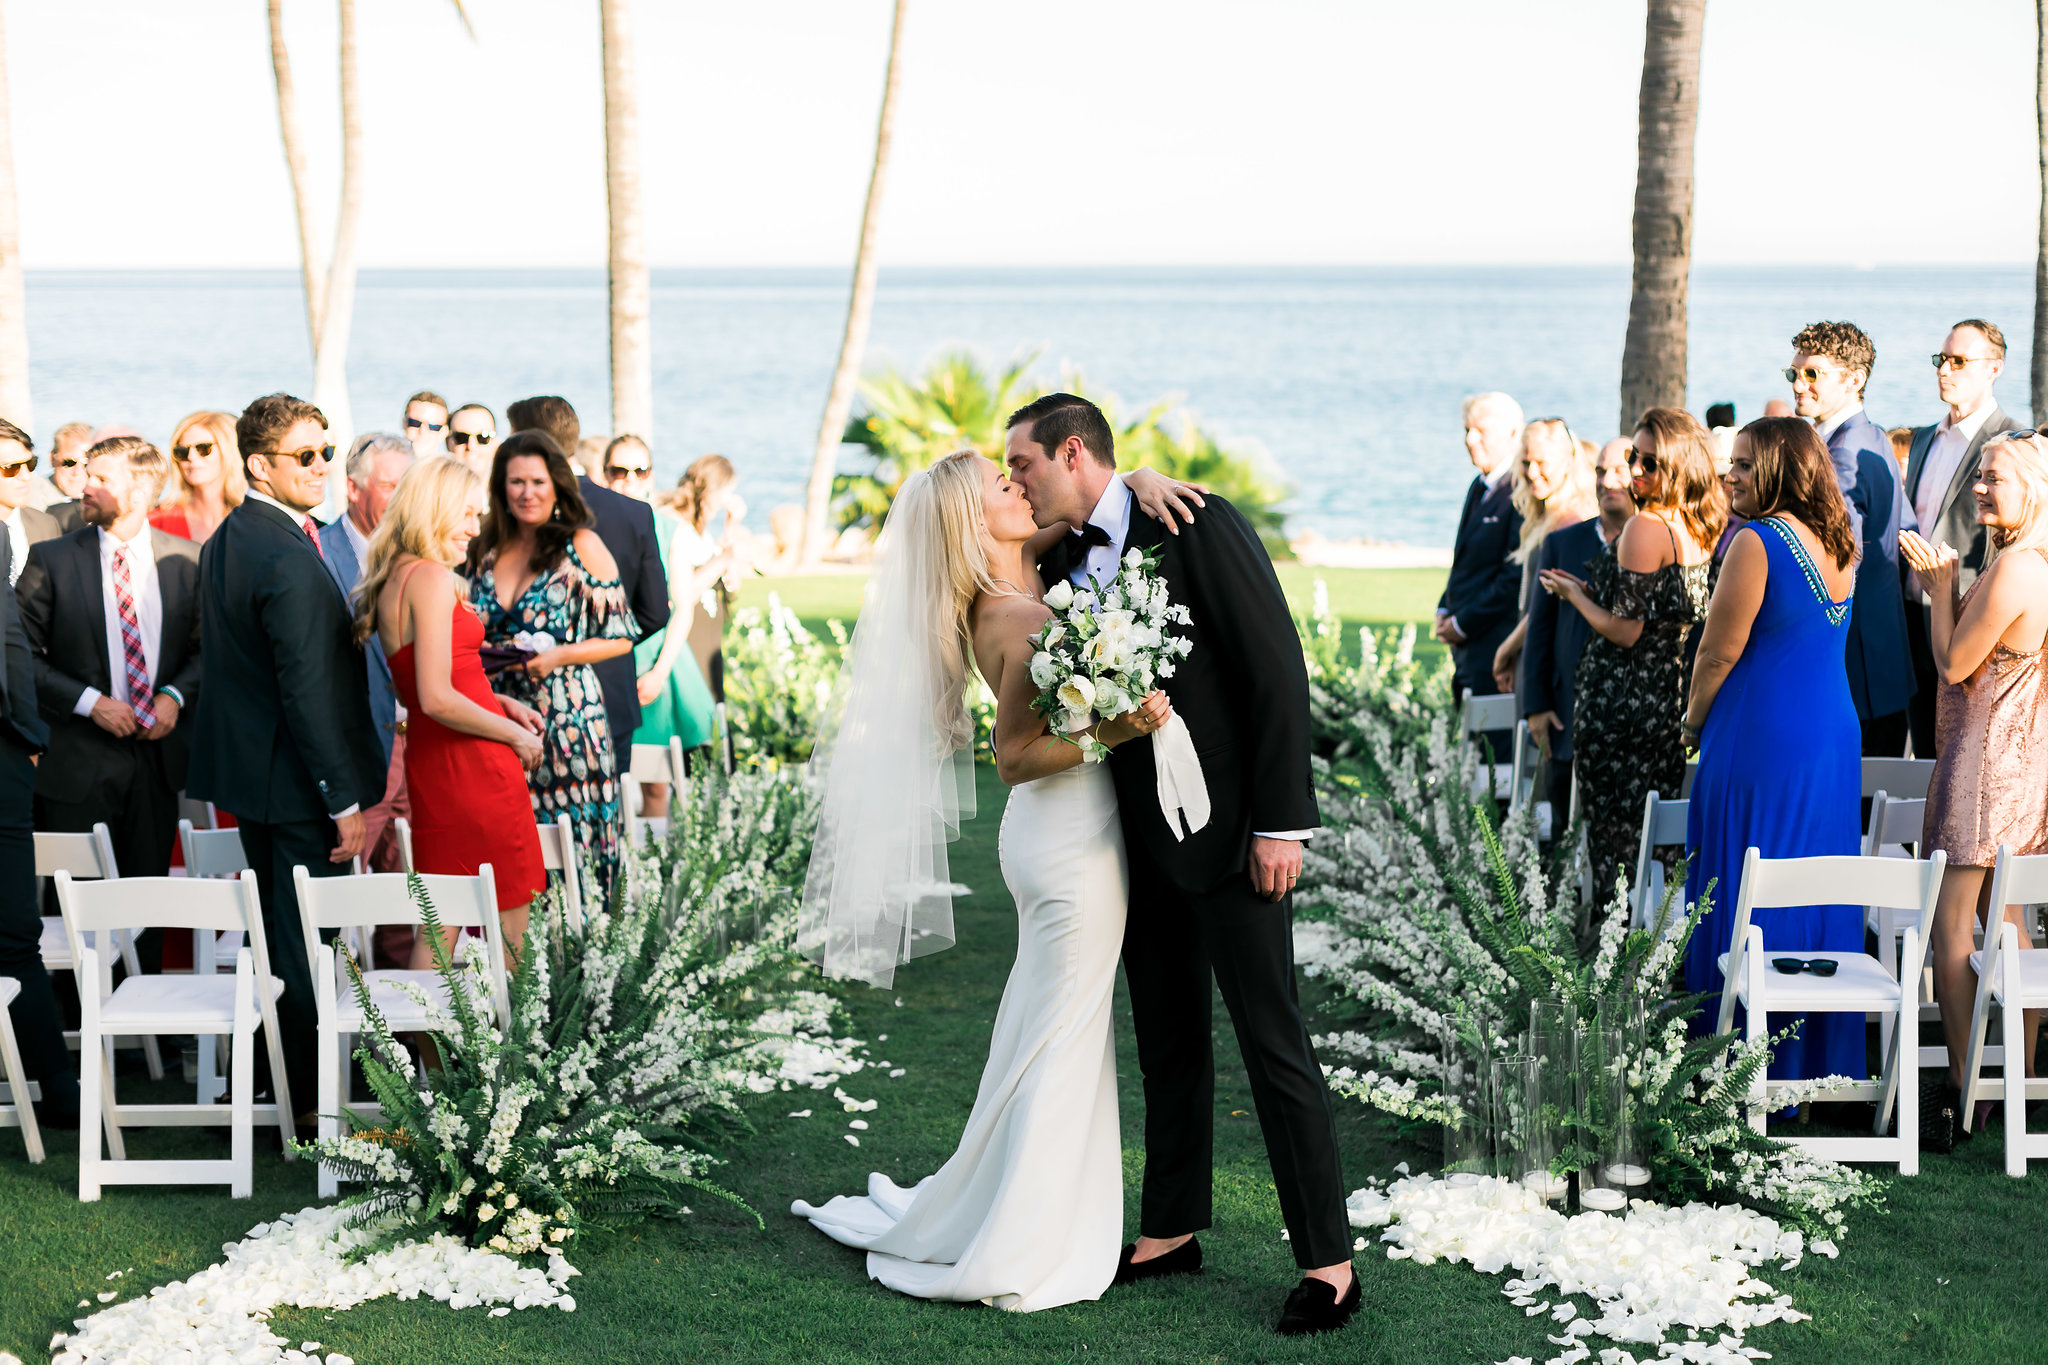 the happy couple at their White Wedding At The One & Only Palmilla